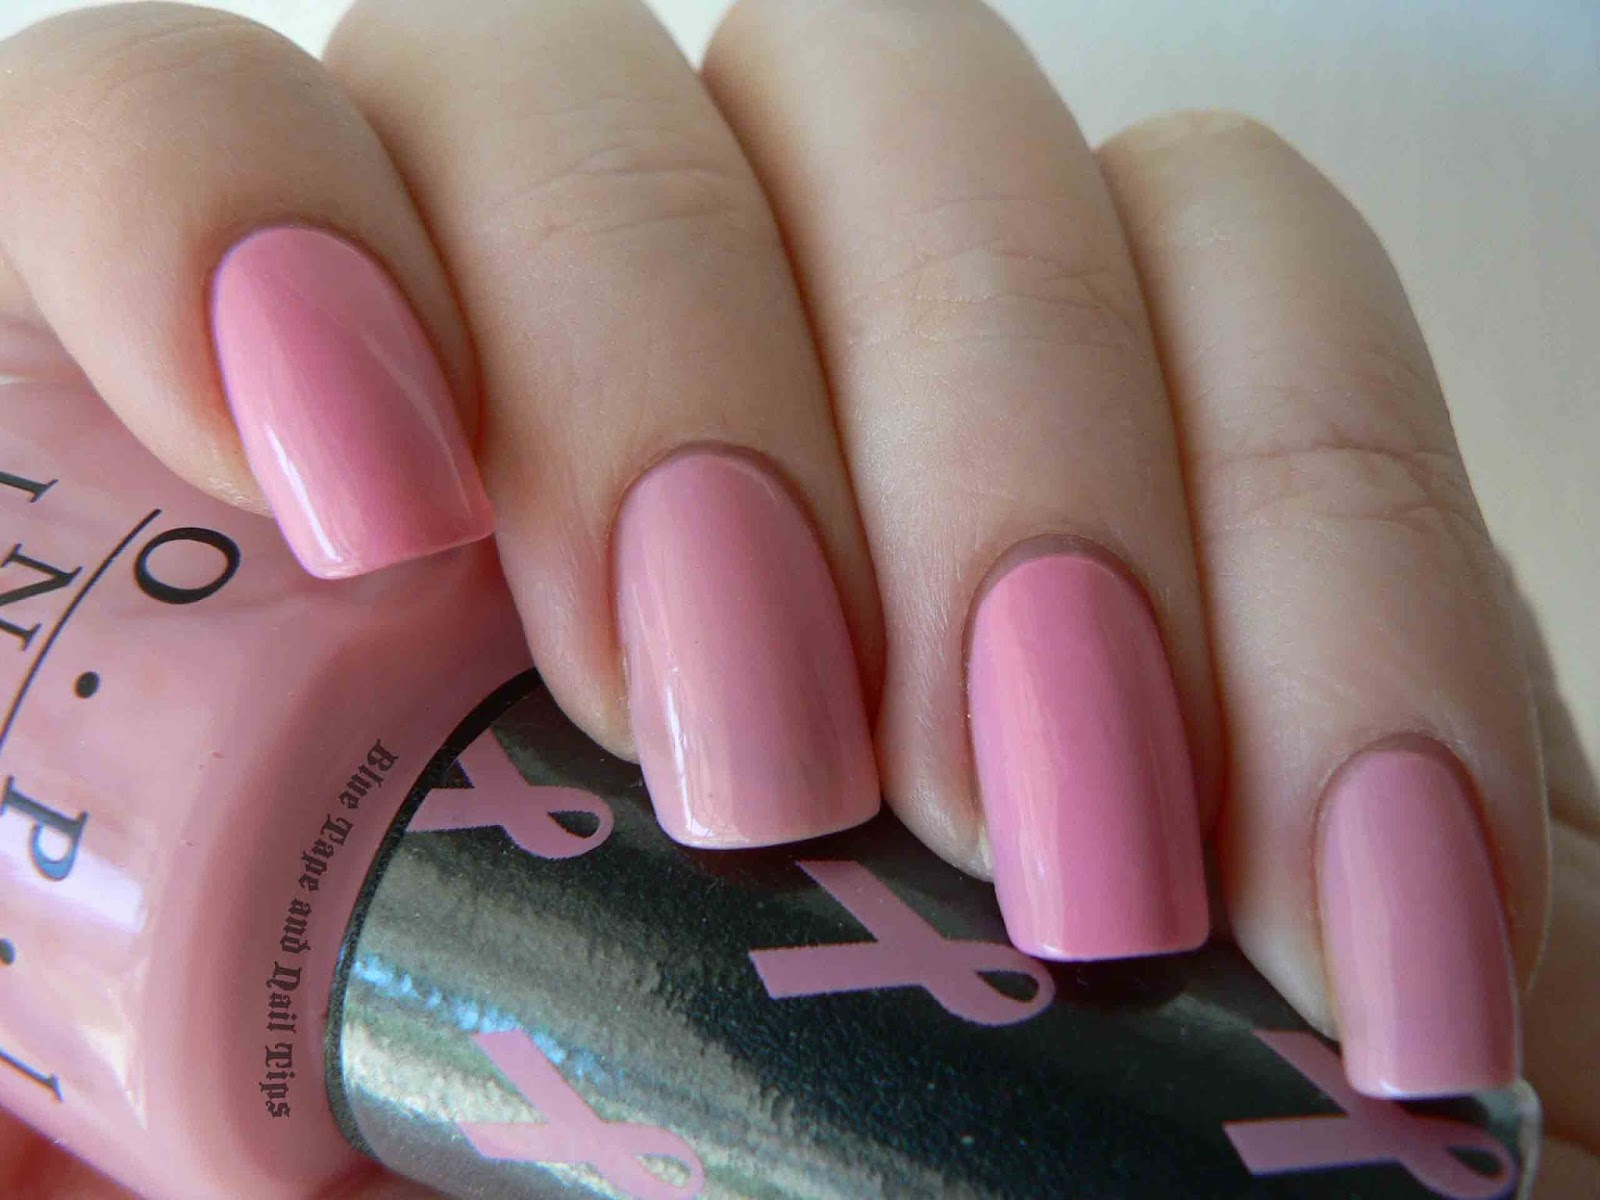 Blue Tape and Nail Tips: OPI Pink of Hearts 2013 Swatches and Review